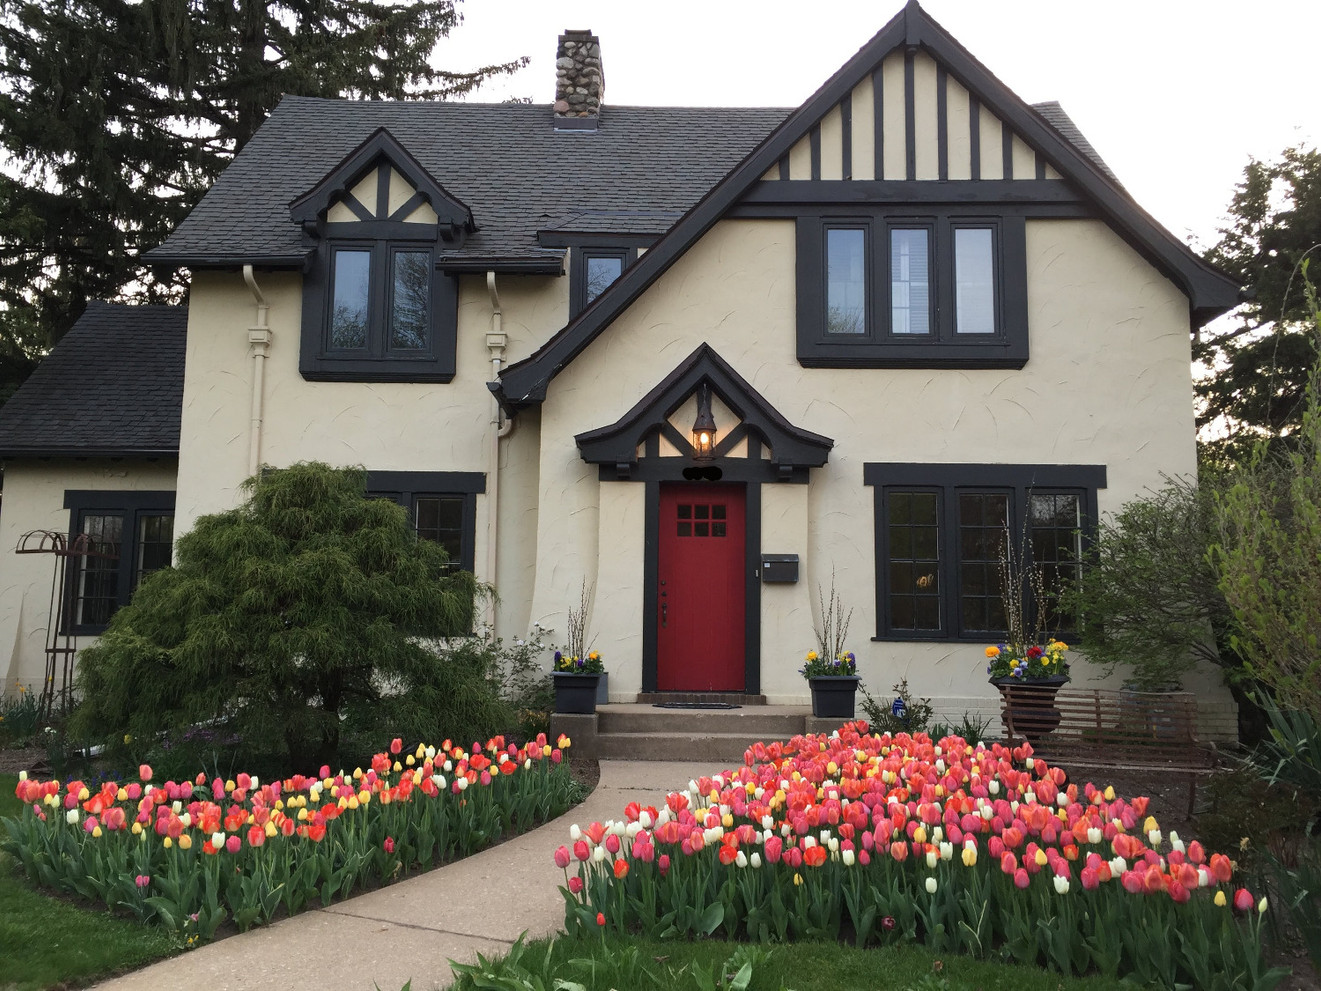 Spring Tulip Splendor at an Edgewater Home